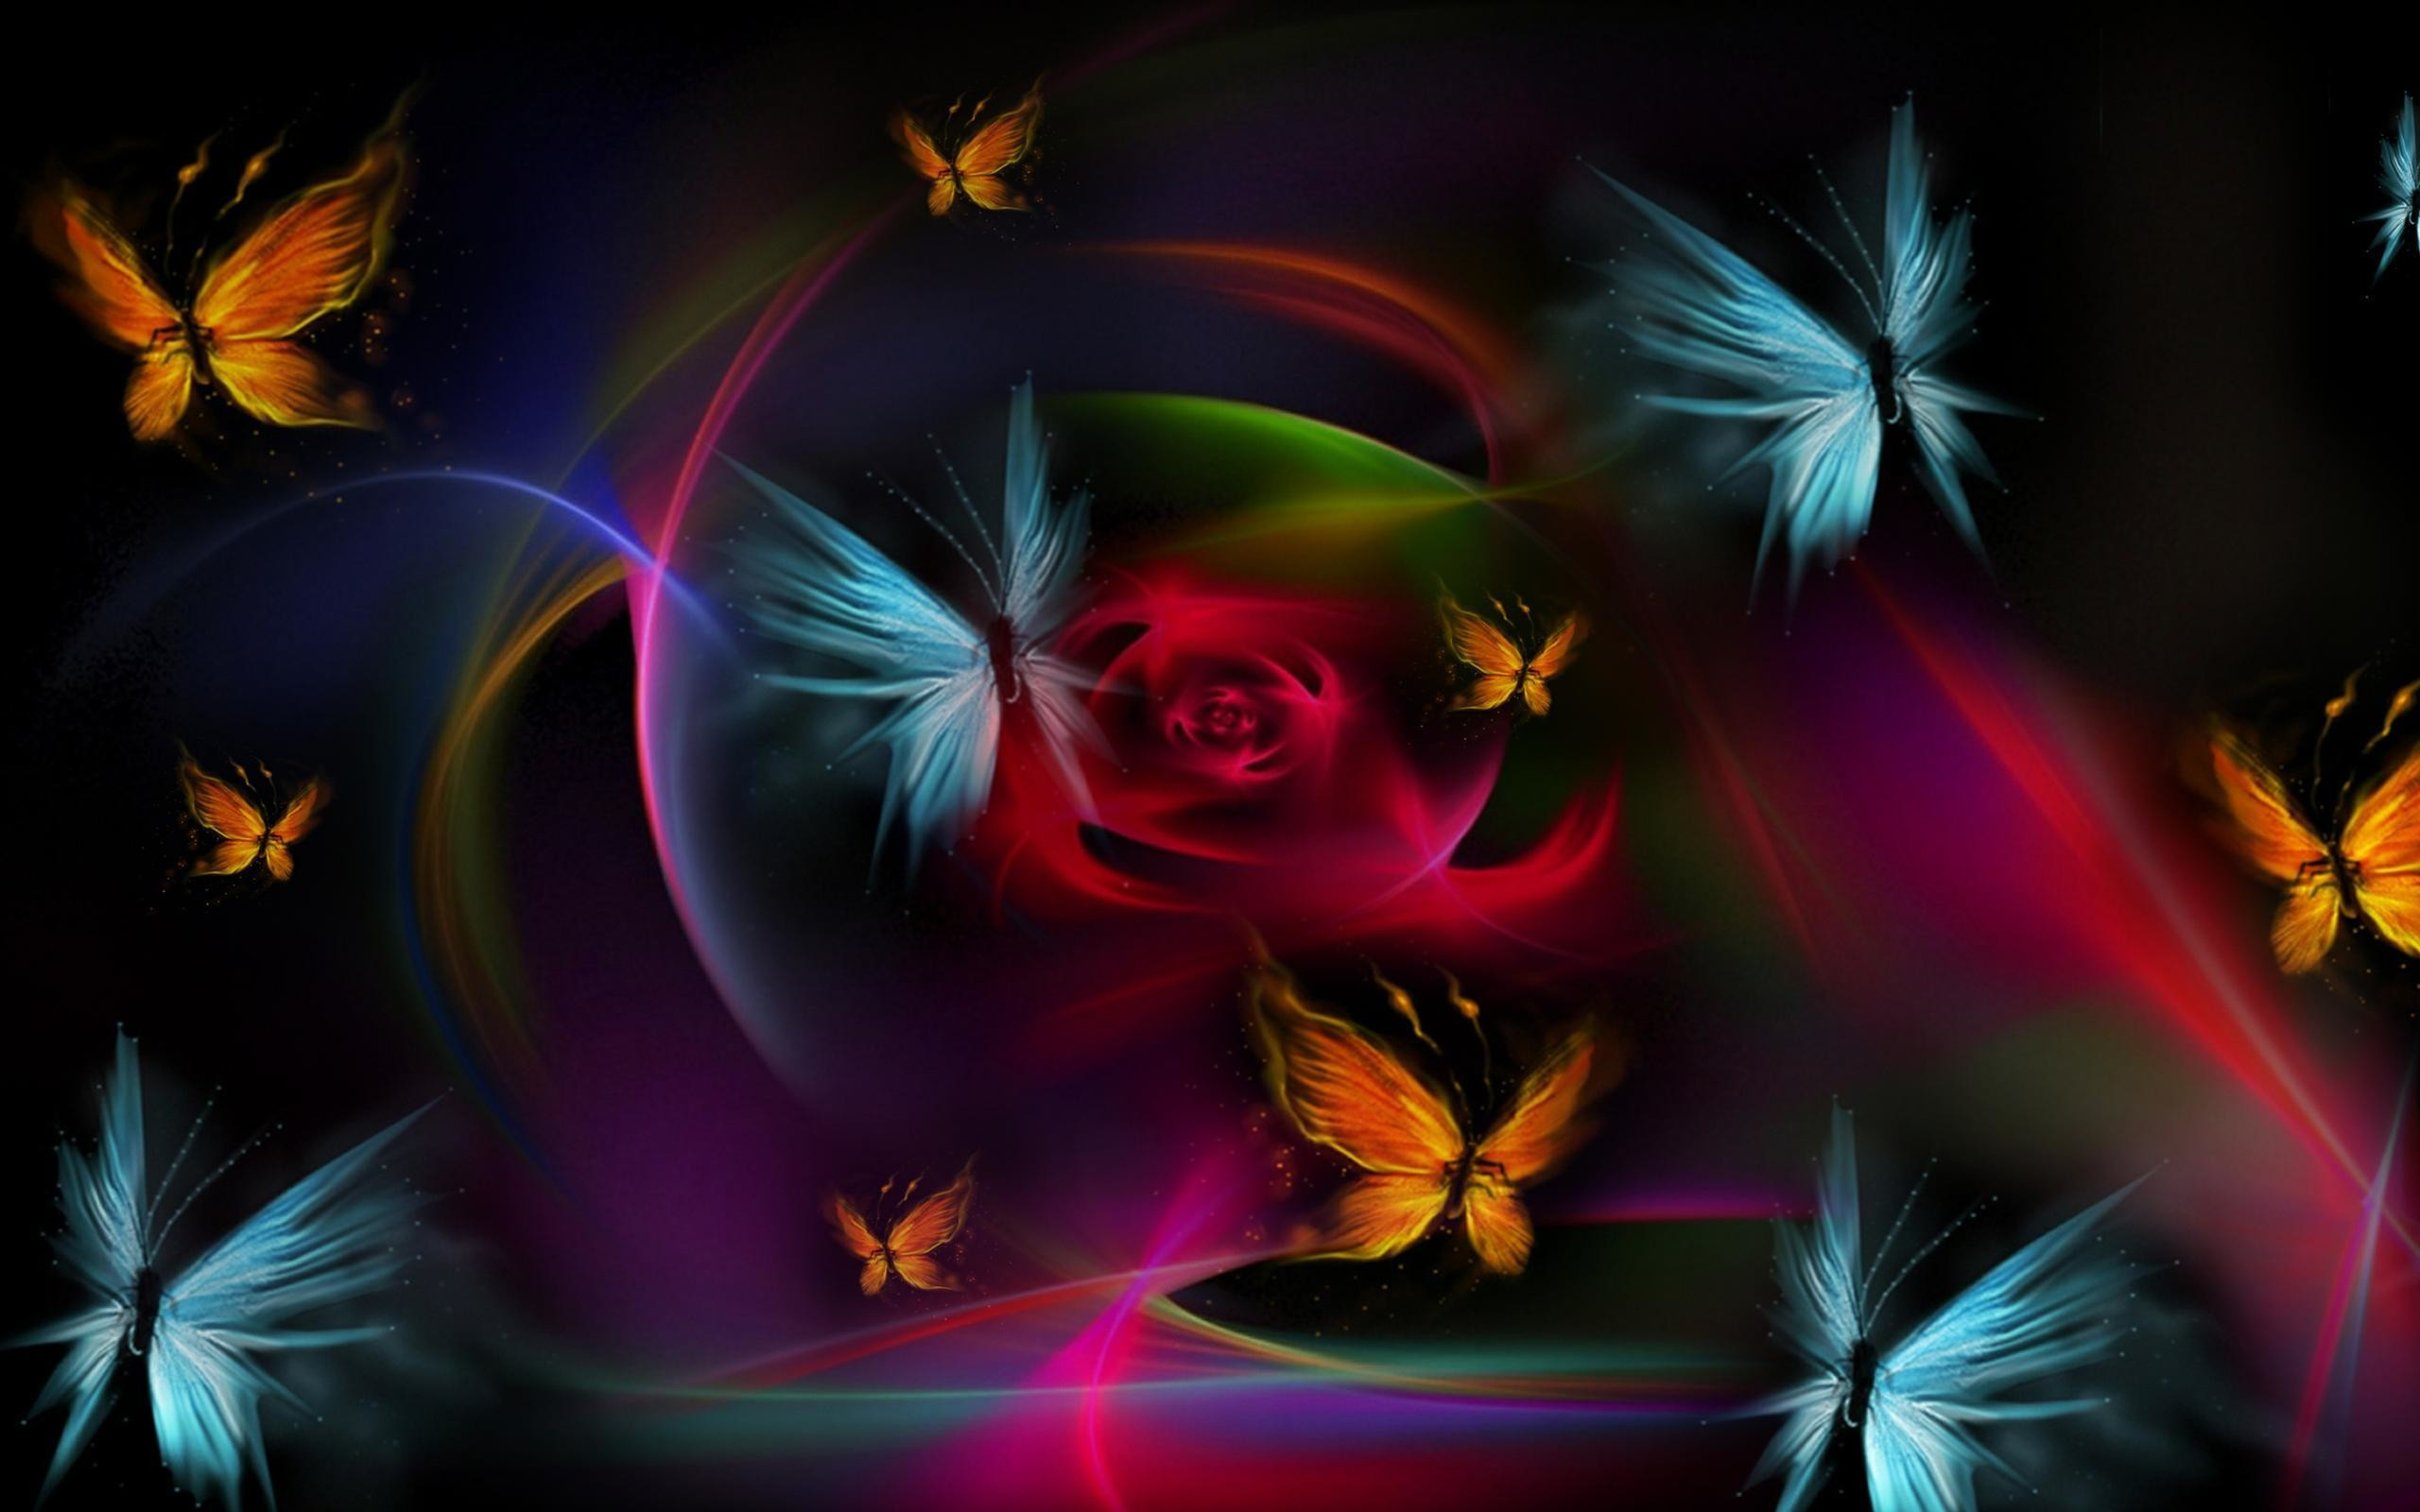 Res: 2560x1600, 3D Abstract Butterfly Wallpaper Backgrounds #19995 Wallpaper .